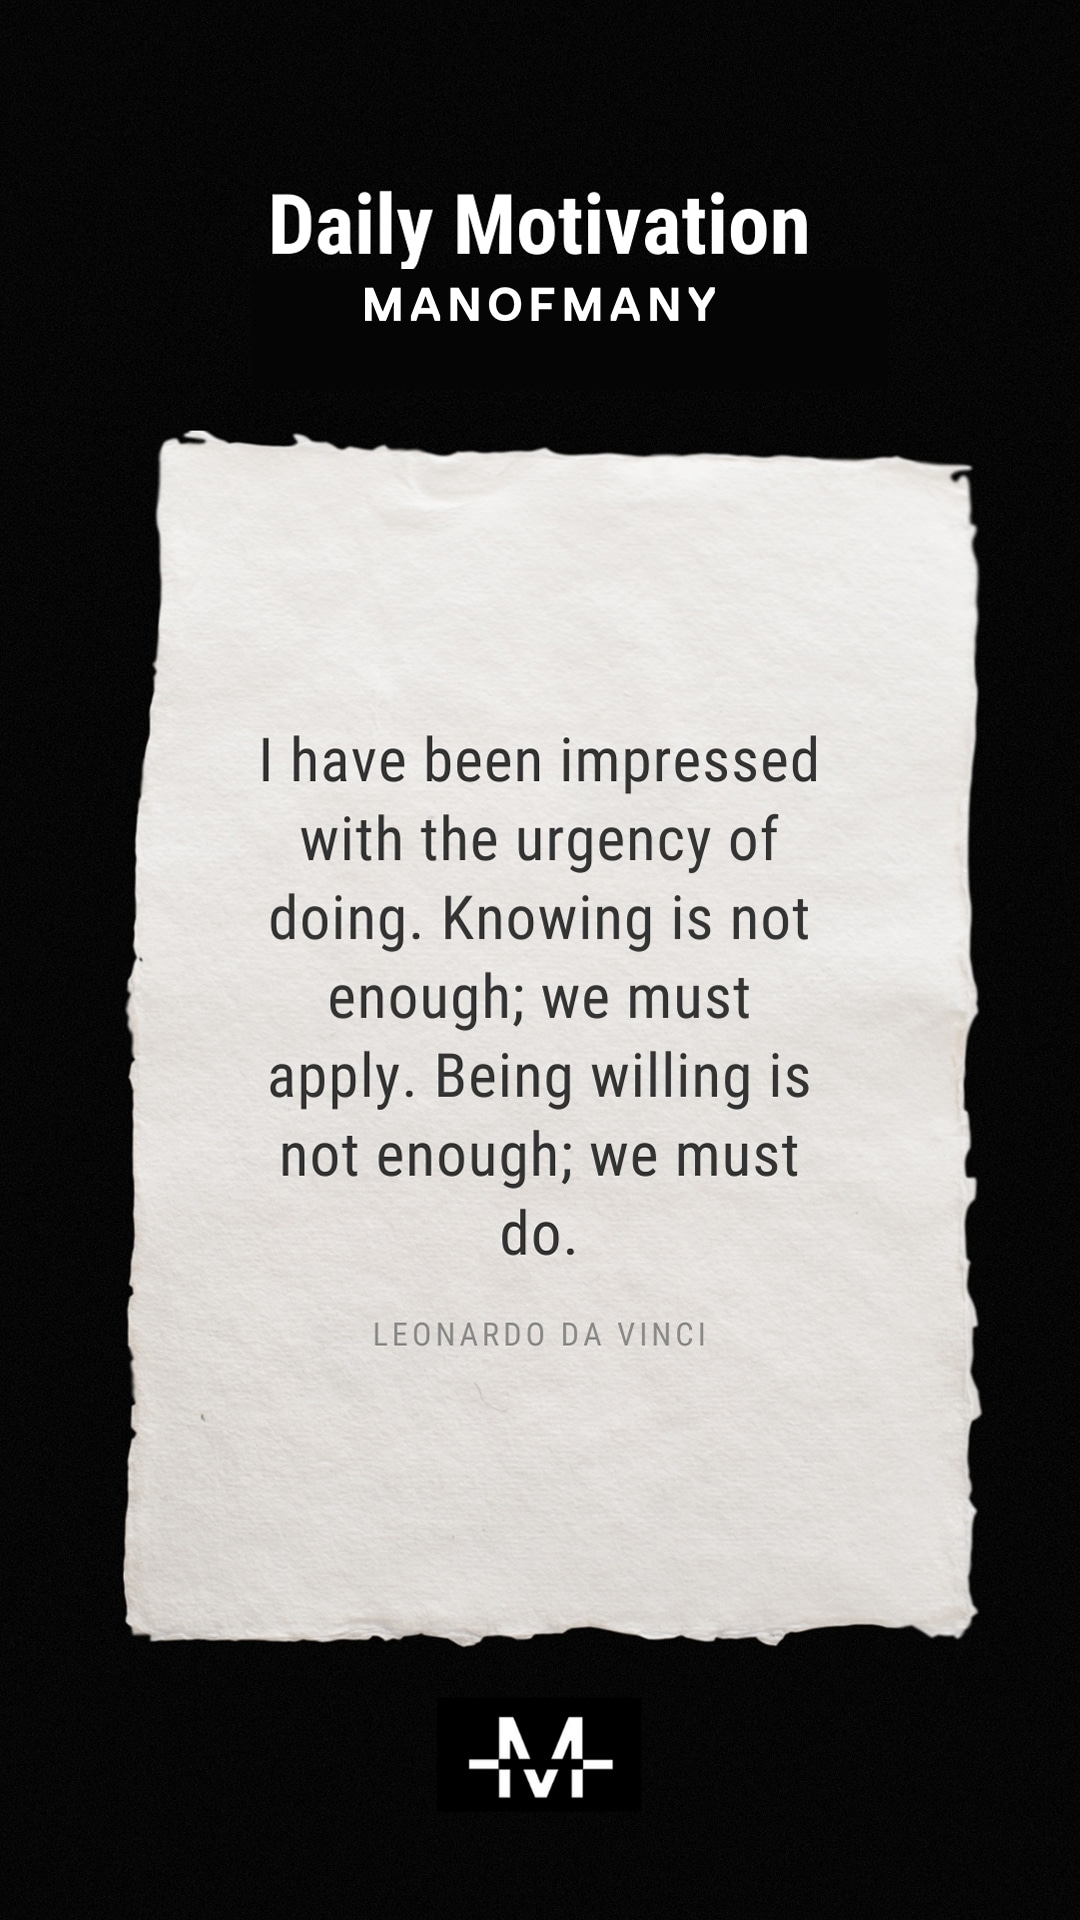 I have been impressed with the urgency of doing. Knowing is not enough; we must apply. Being willing is not enough; we must do. –Leonardo da Vinci quote